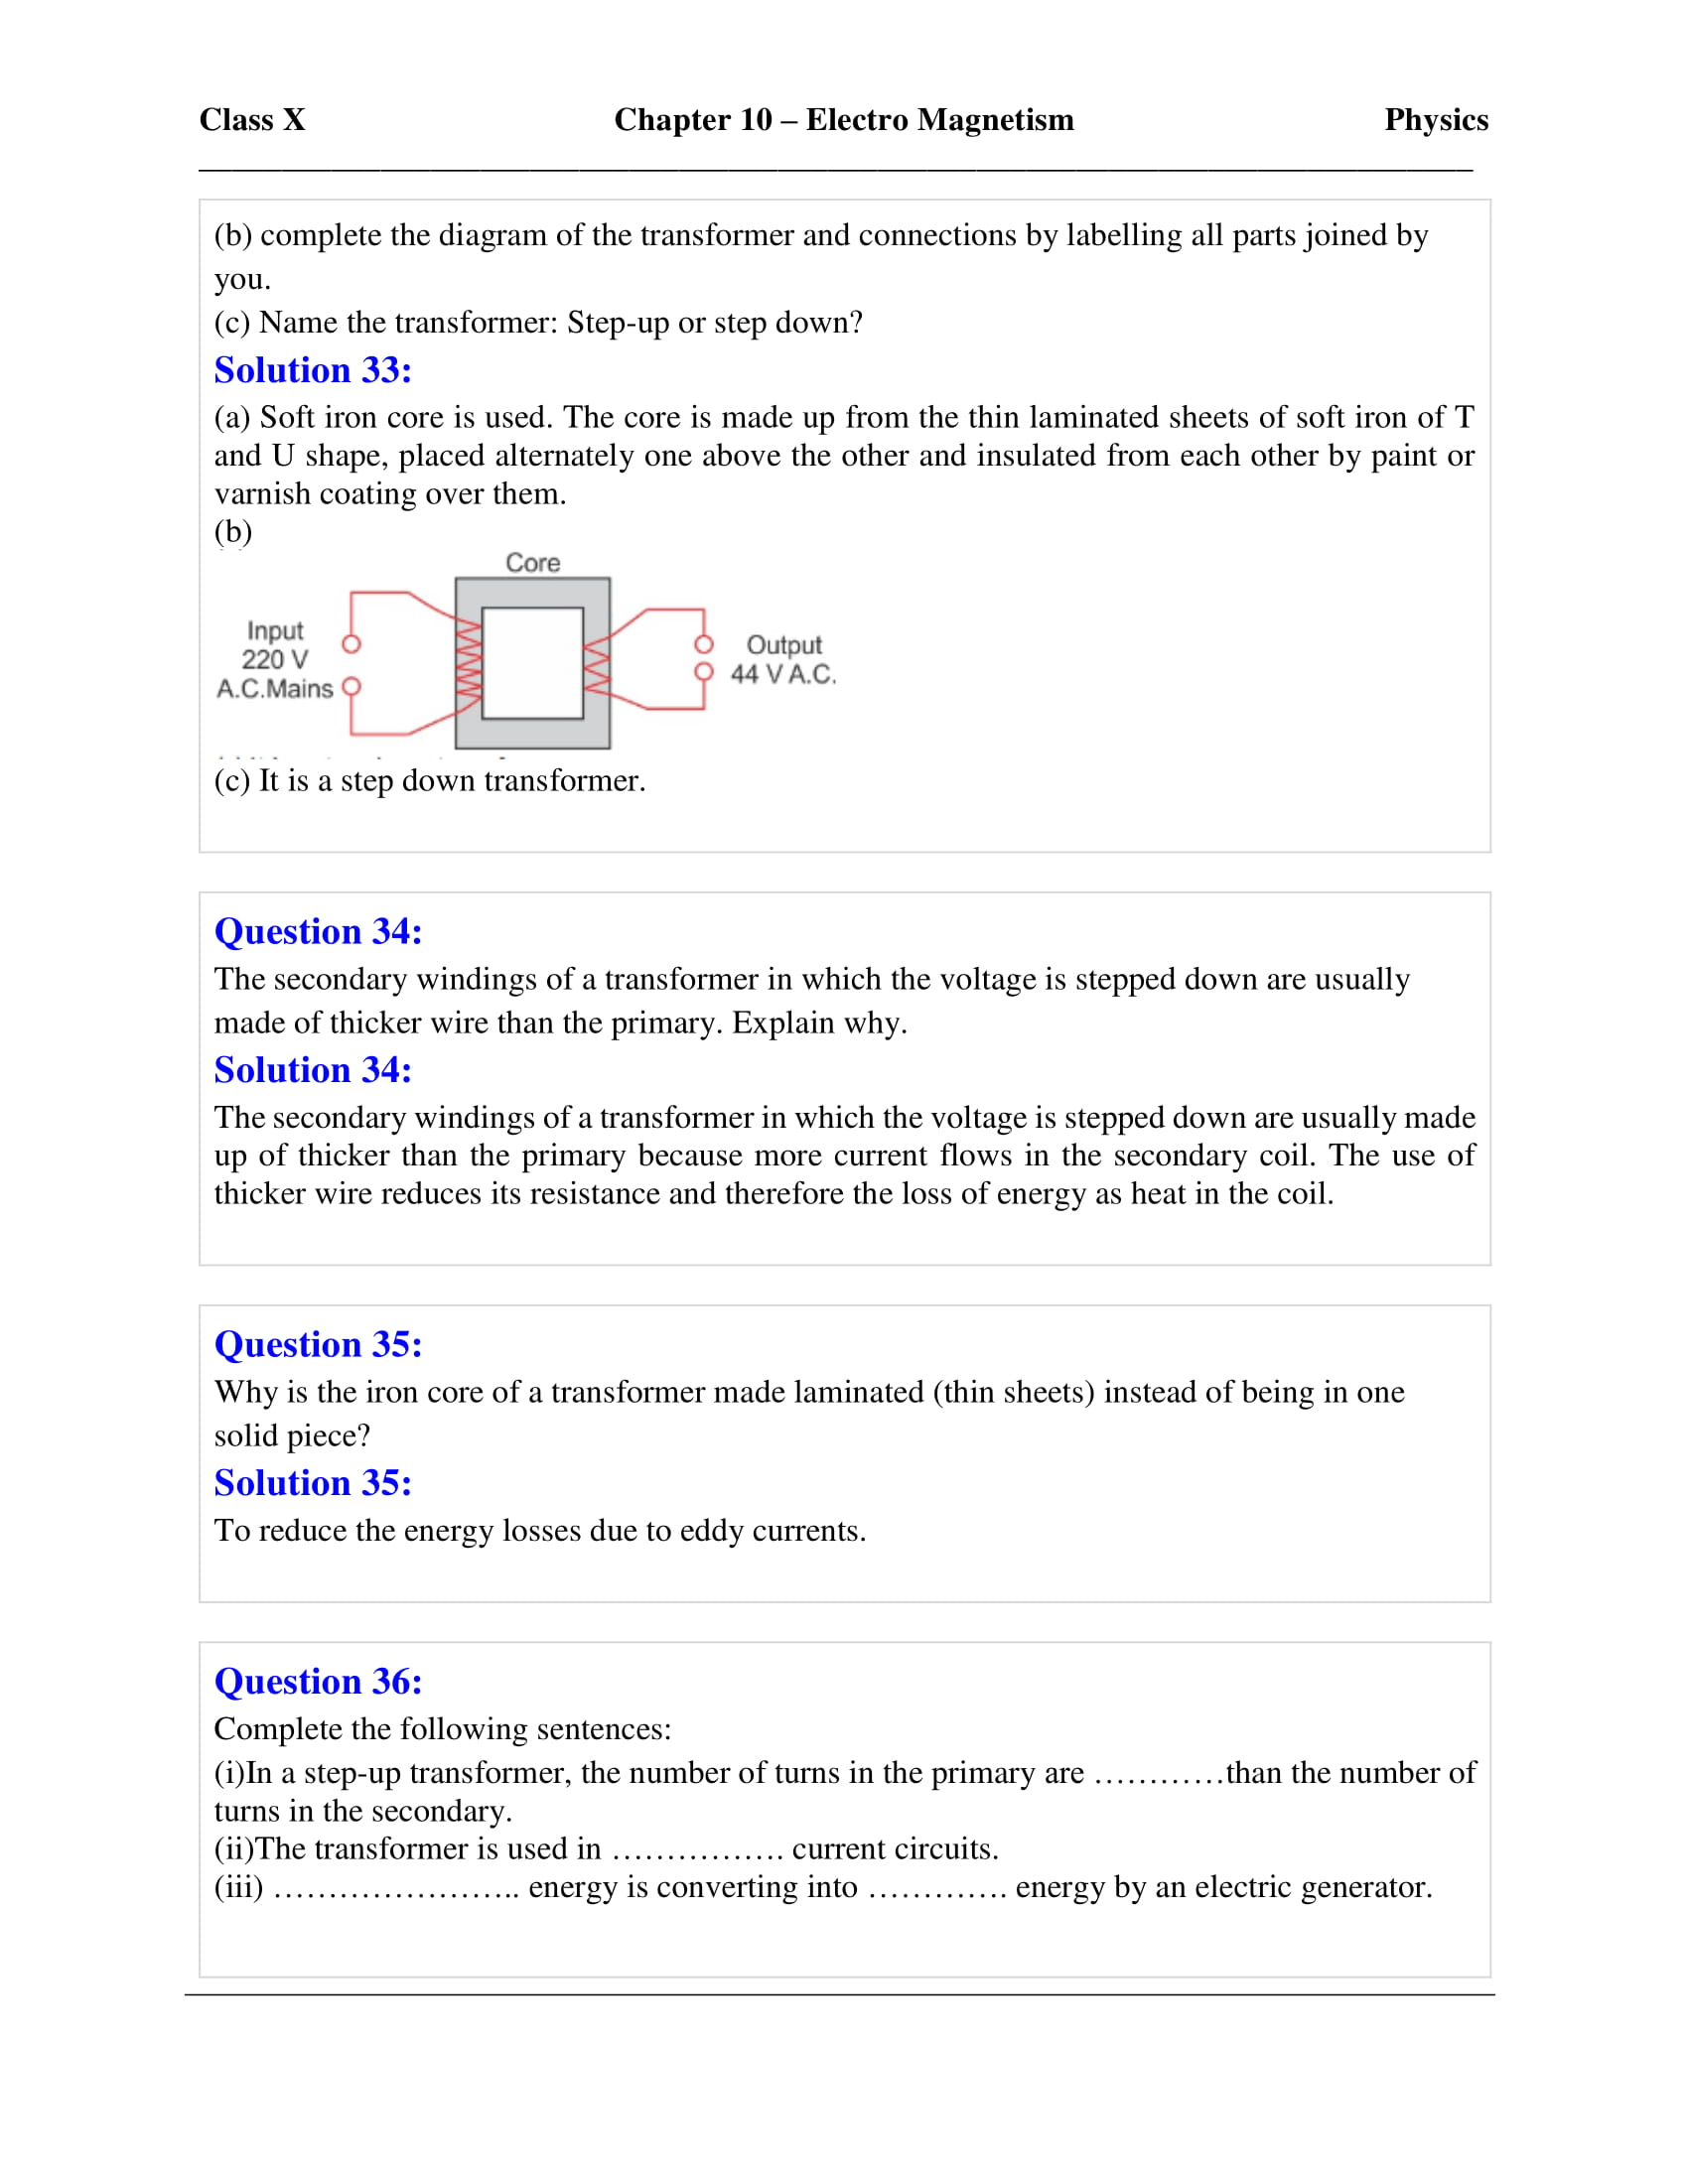 icse-selina-physics-solutions-class-10-chapter-10-electro-magnetism-28